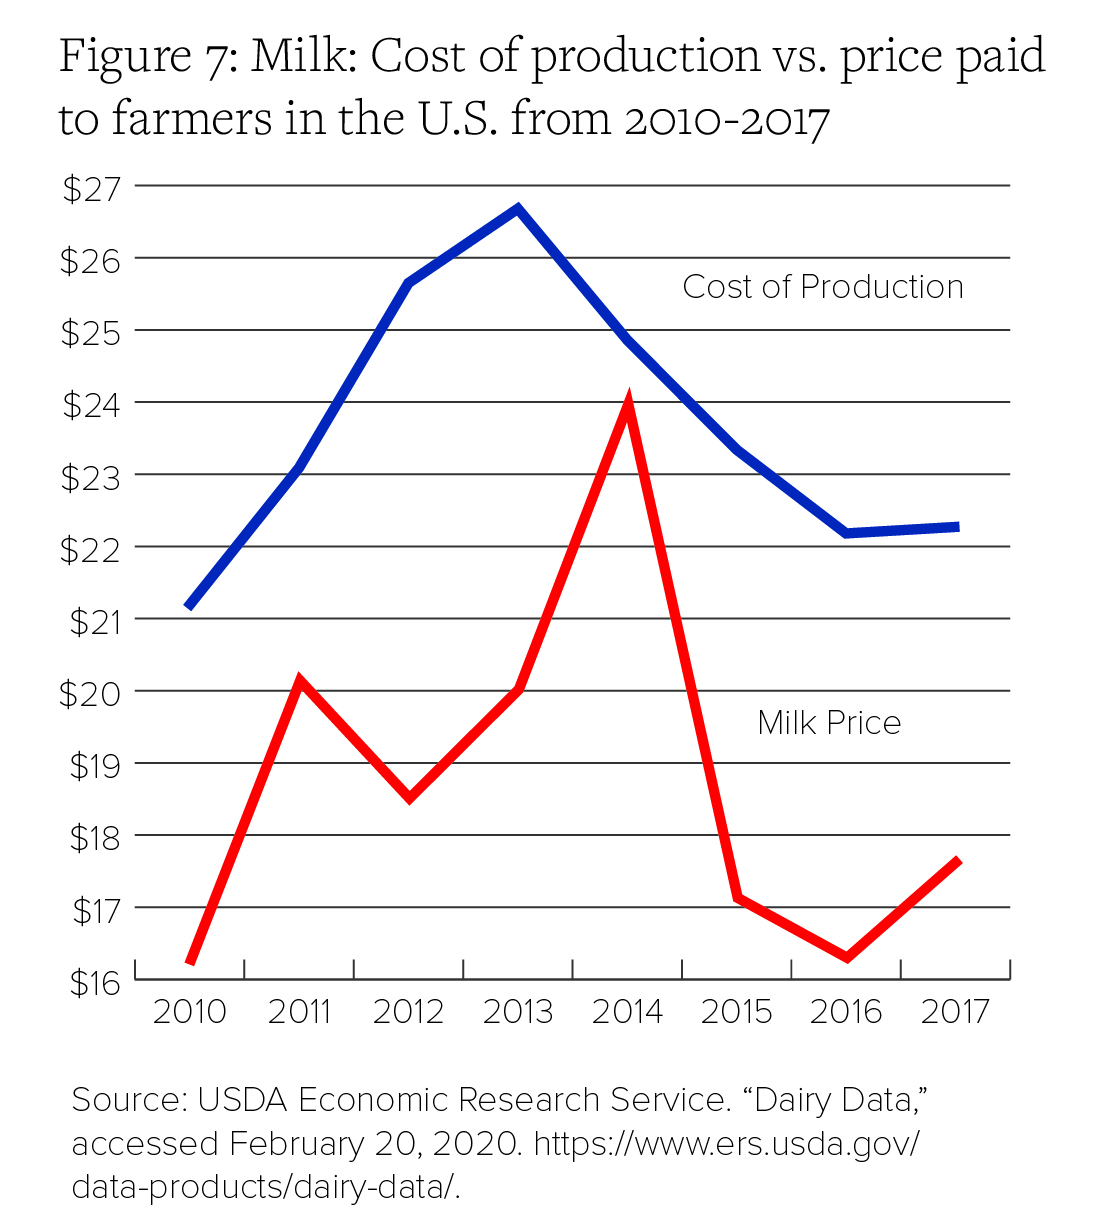 Figure 7: Milk: Cost of production vs. price paid to farmers in the U.S. from 2010-2017